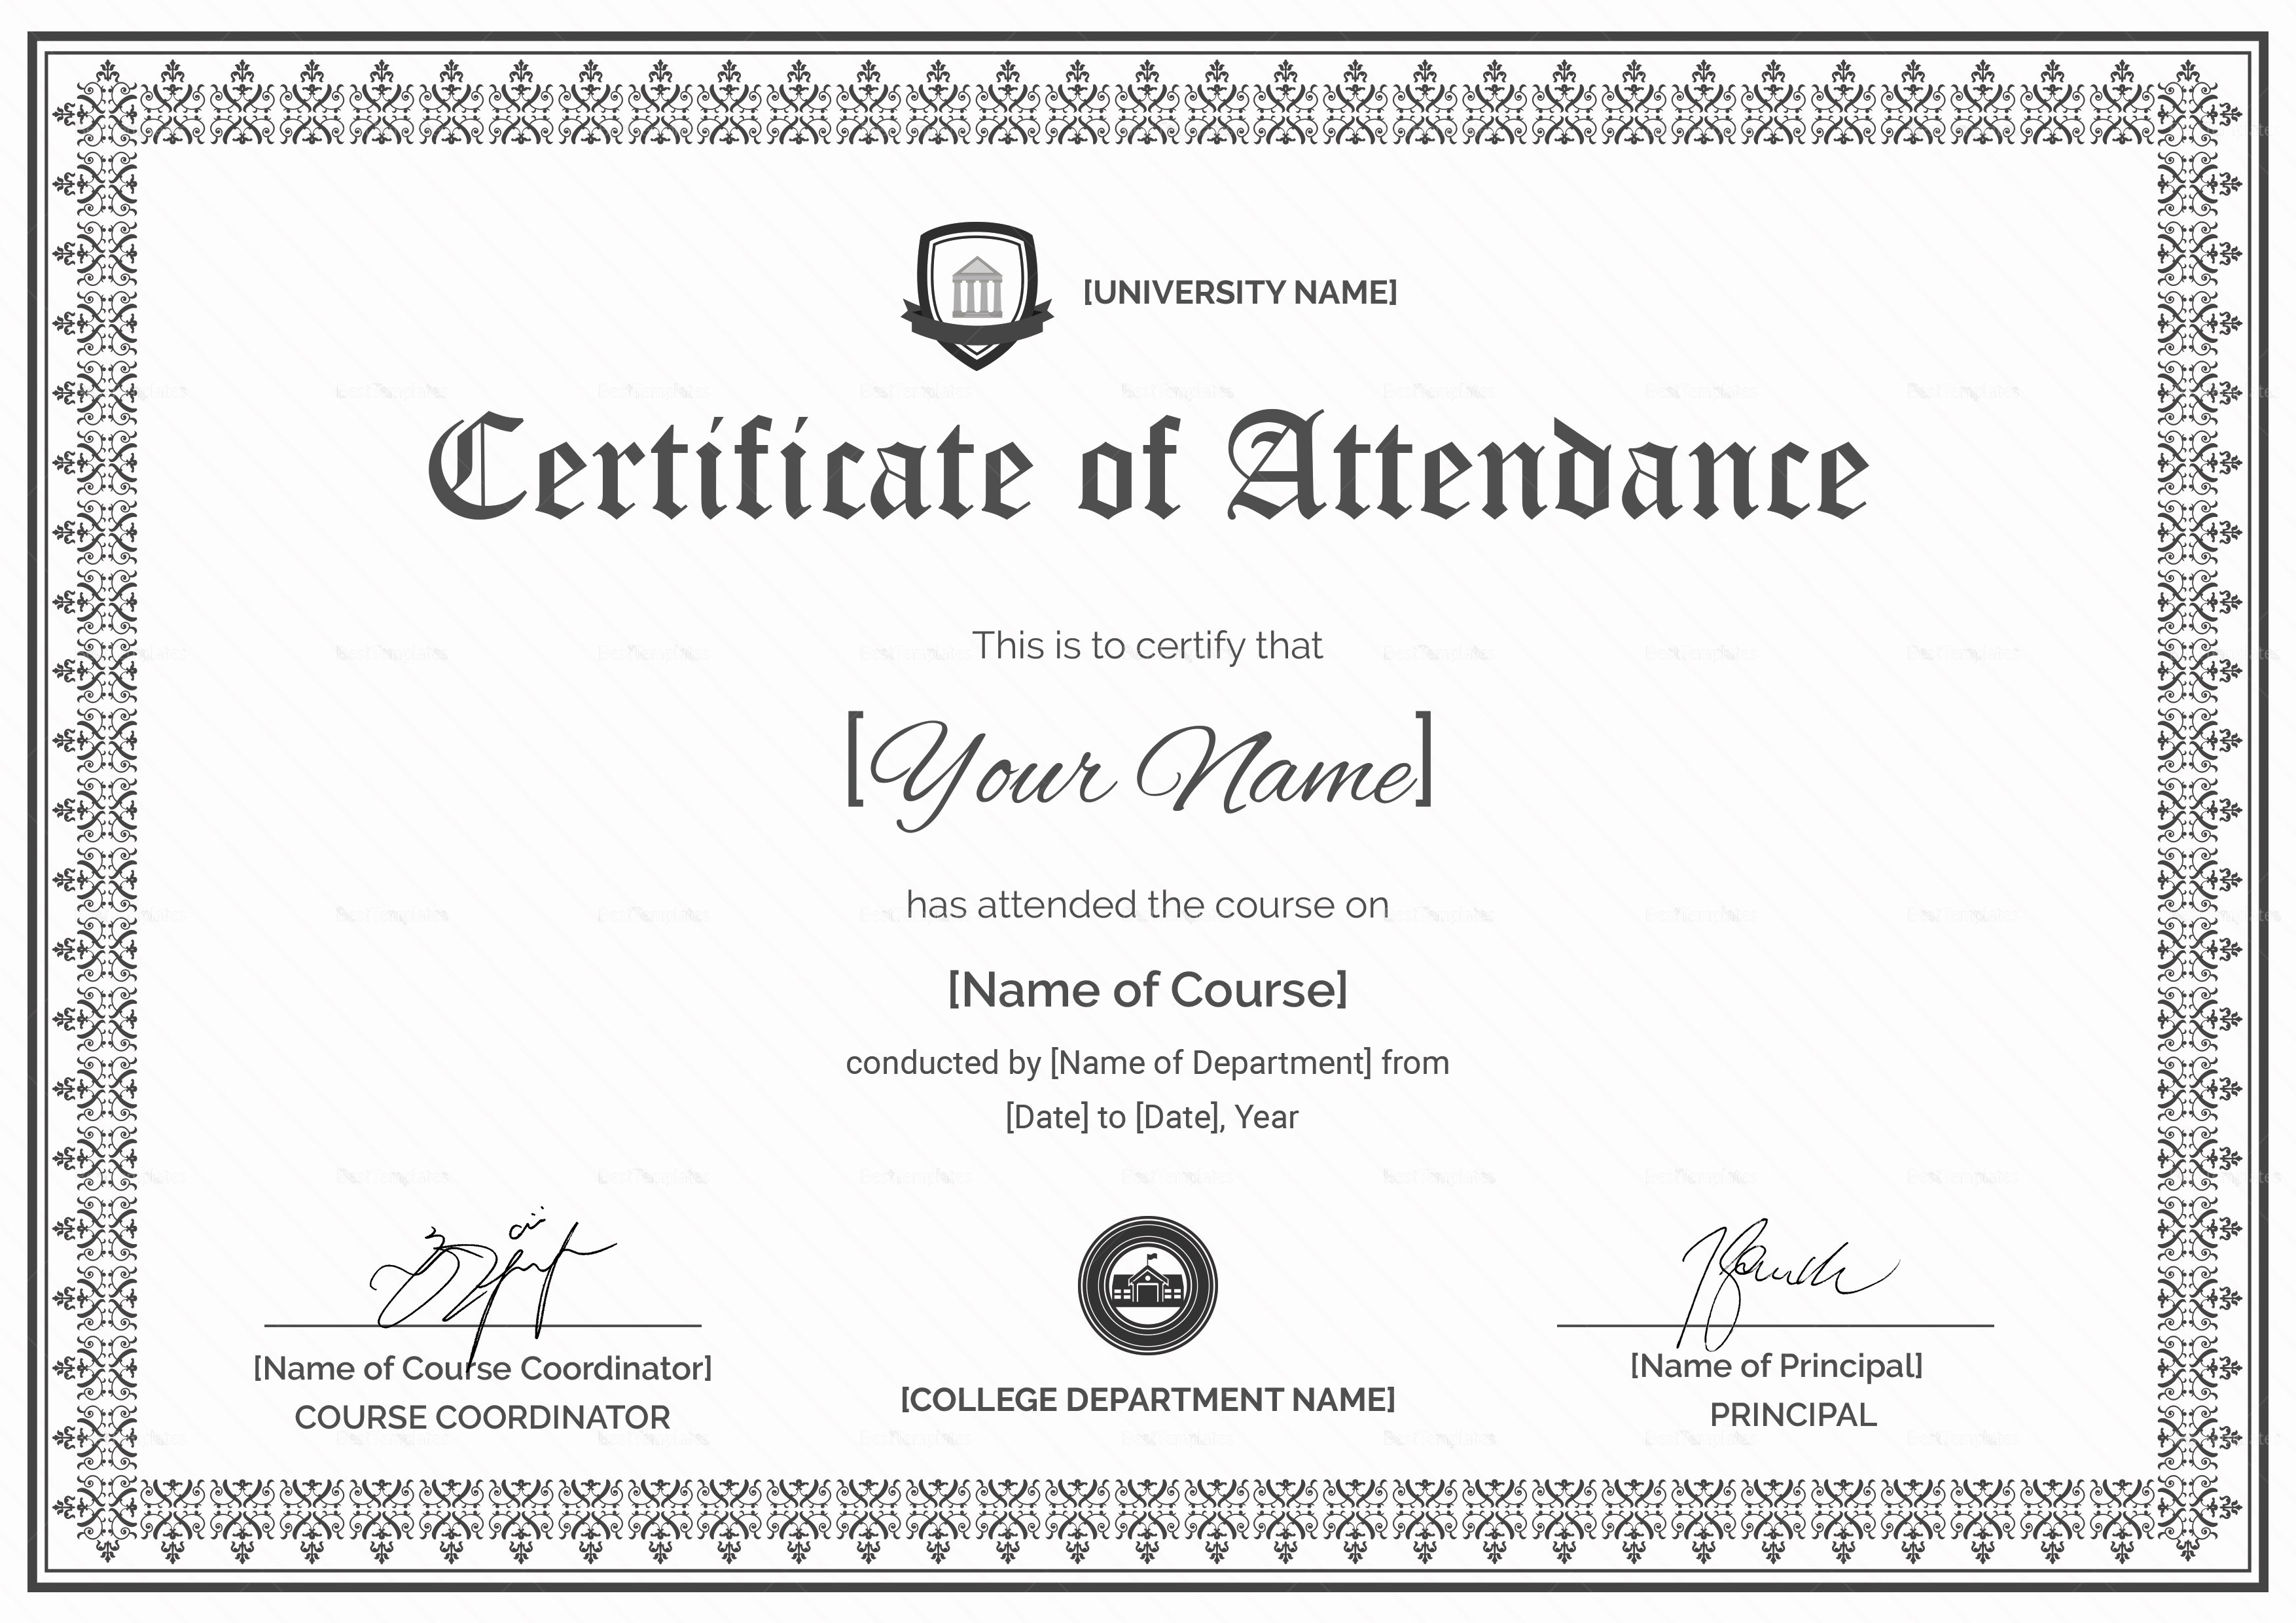 Certificate Of attendance Template Free Lovely Course attendance Certificate Design Template In Psd Word